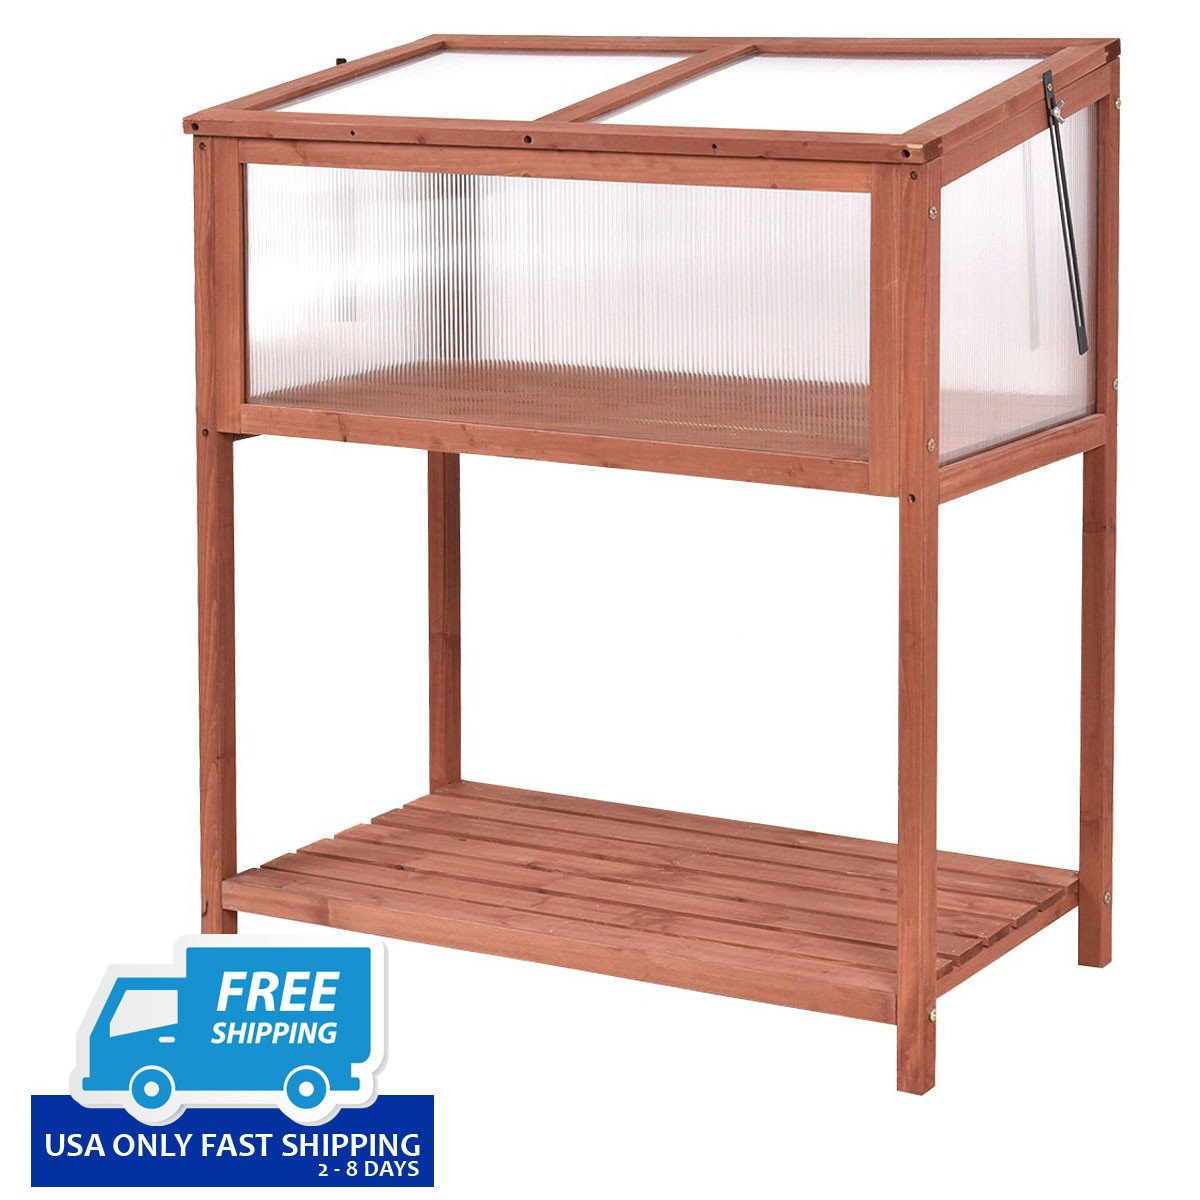 Garden Portable Wooden Cold Frame Greenhouse – By Choice Products